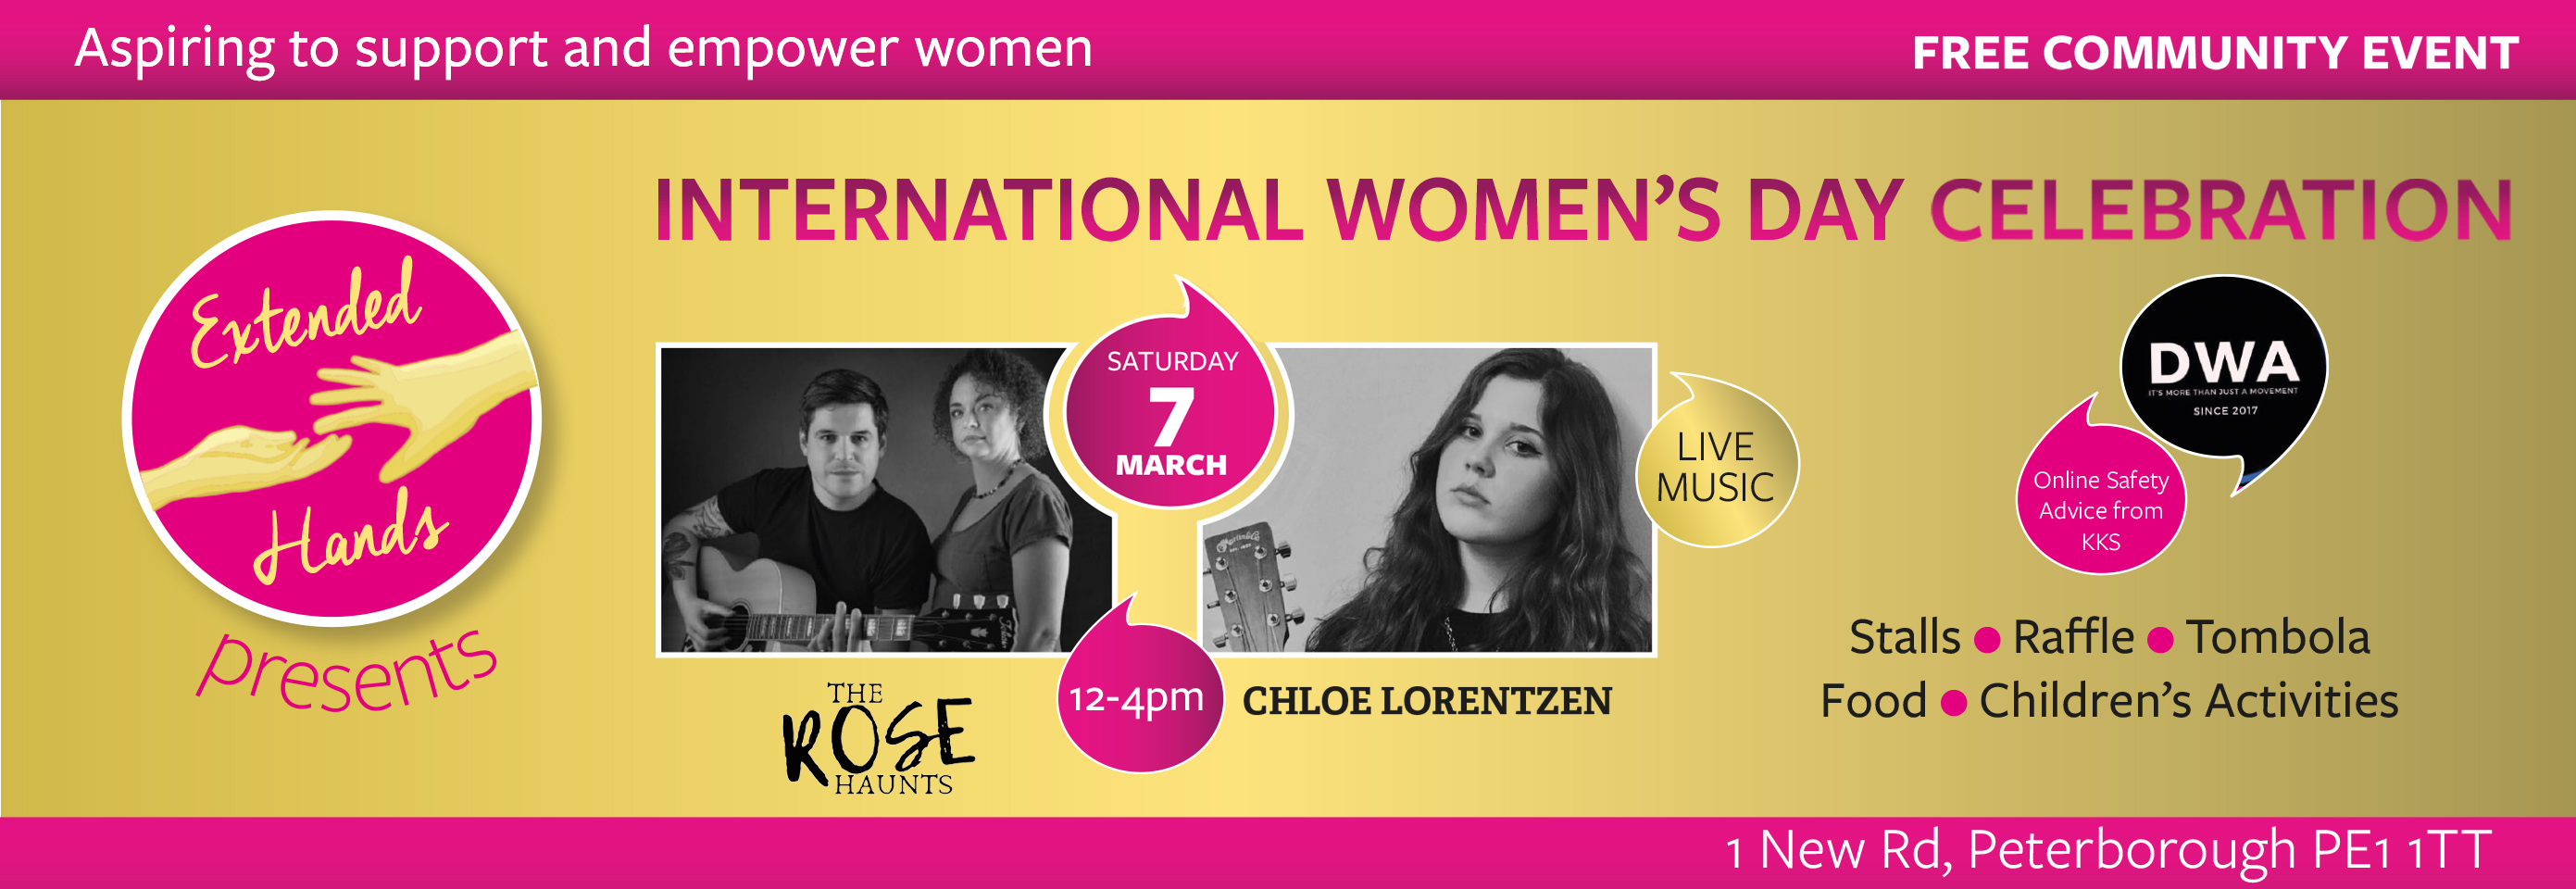 EH_Website_Banner_IWD1